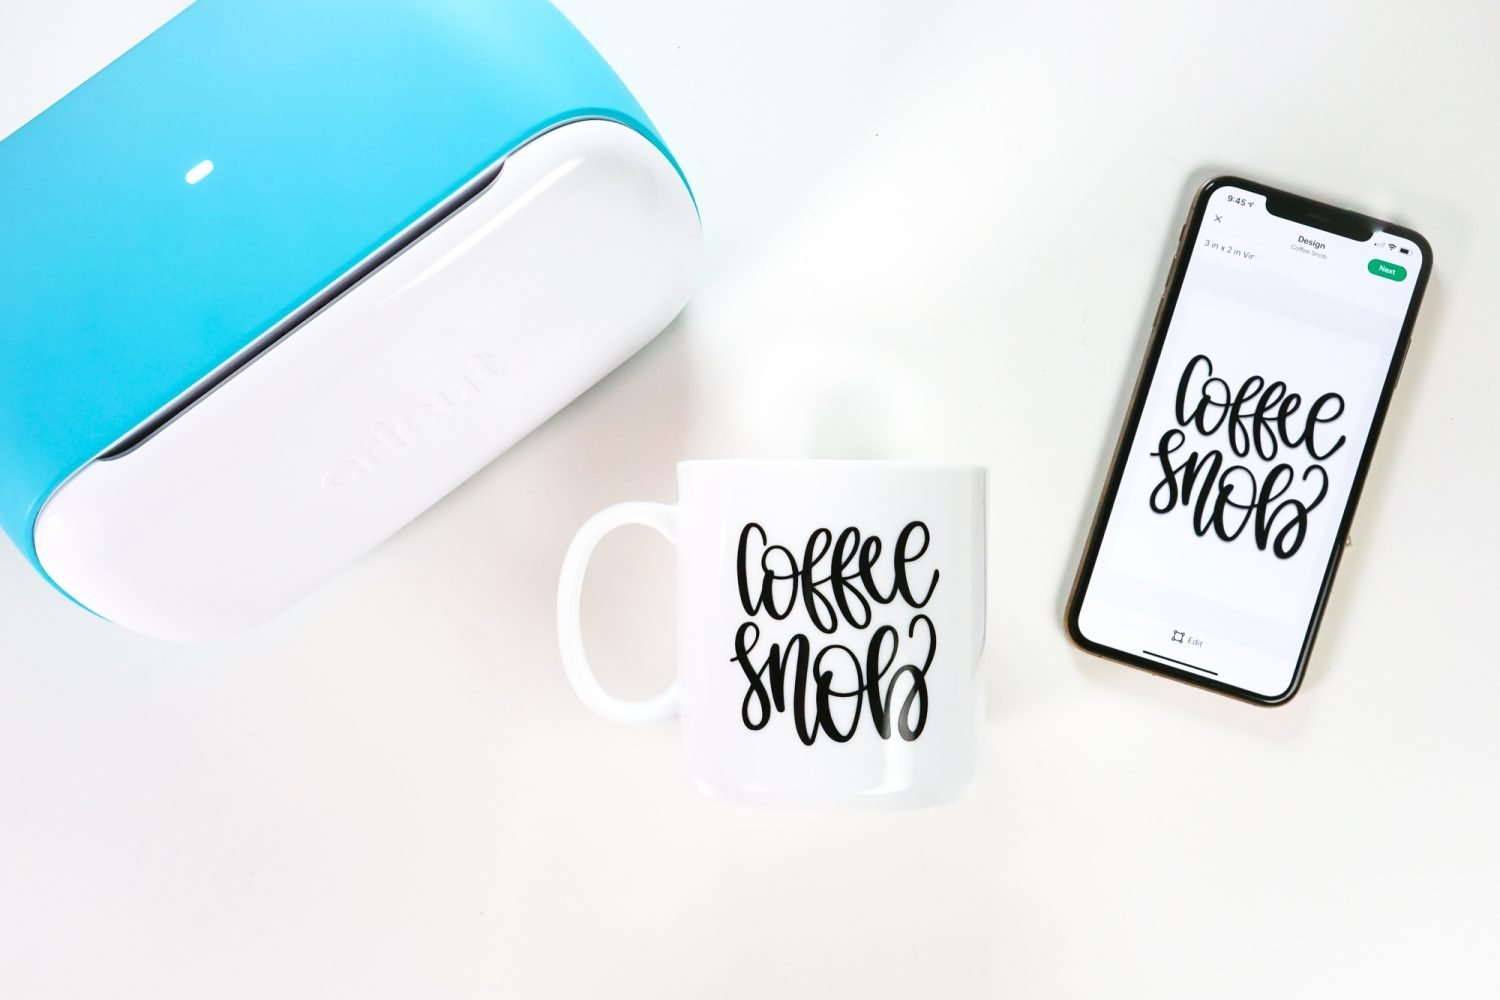 Cricut Joy with iPhone and Cricut Joy app with finished mug project